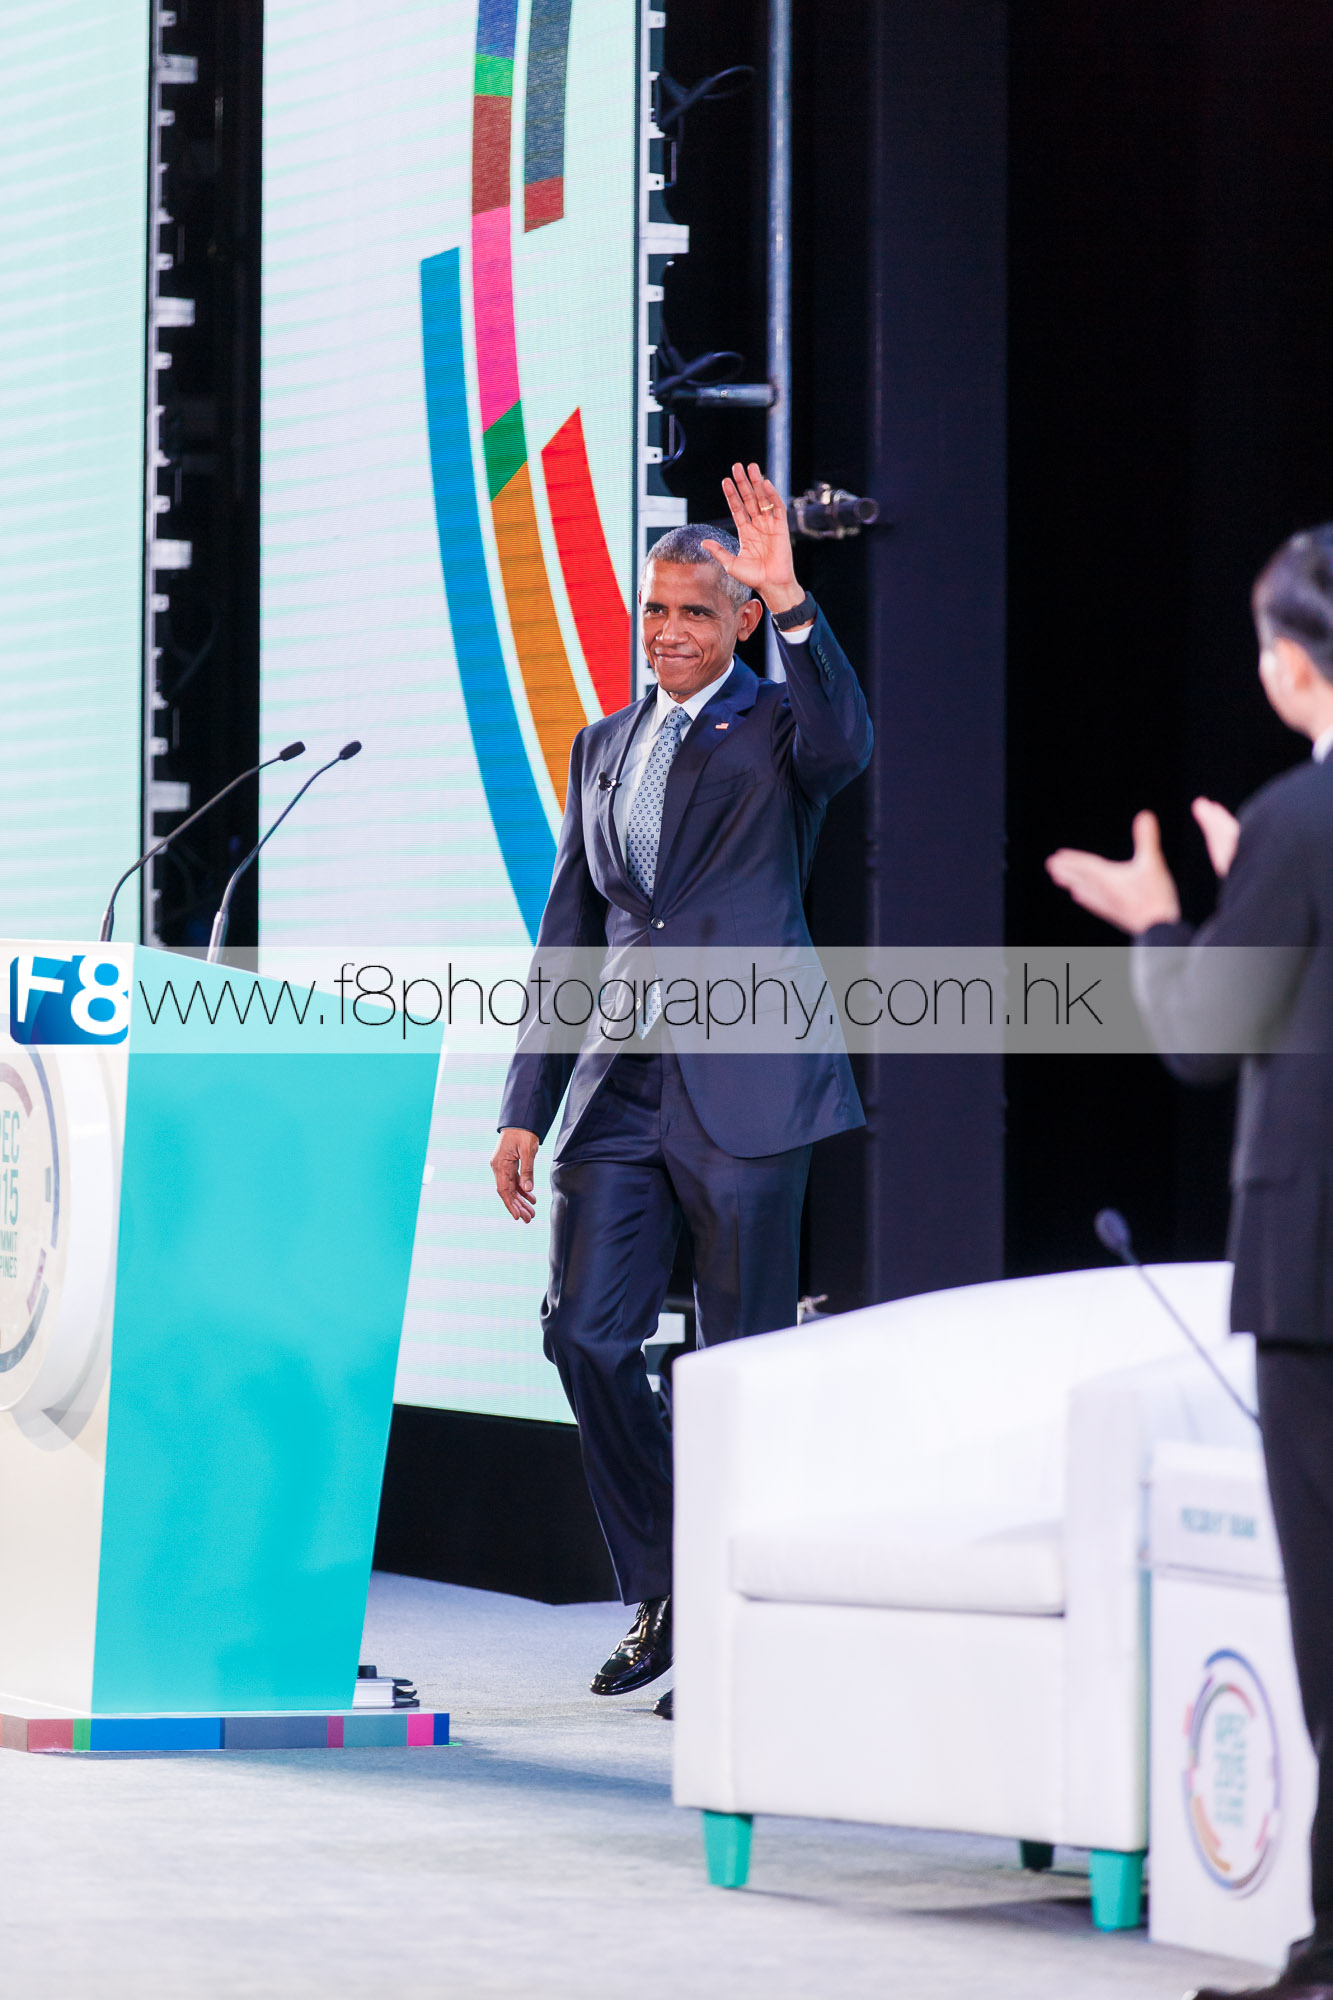 President Barack Obama arriving on stage to greet the 2015 APEC guests.